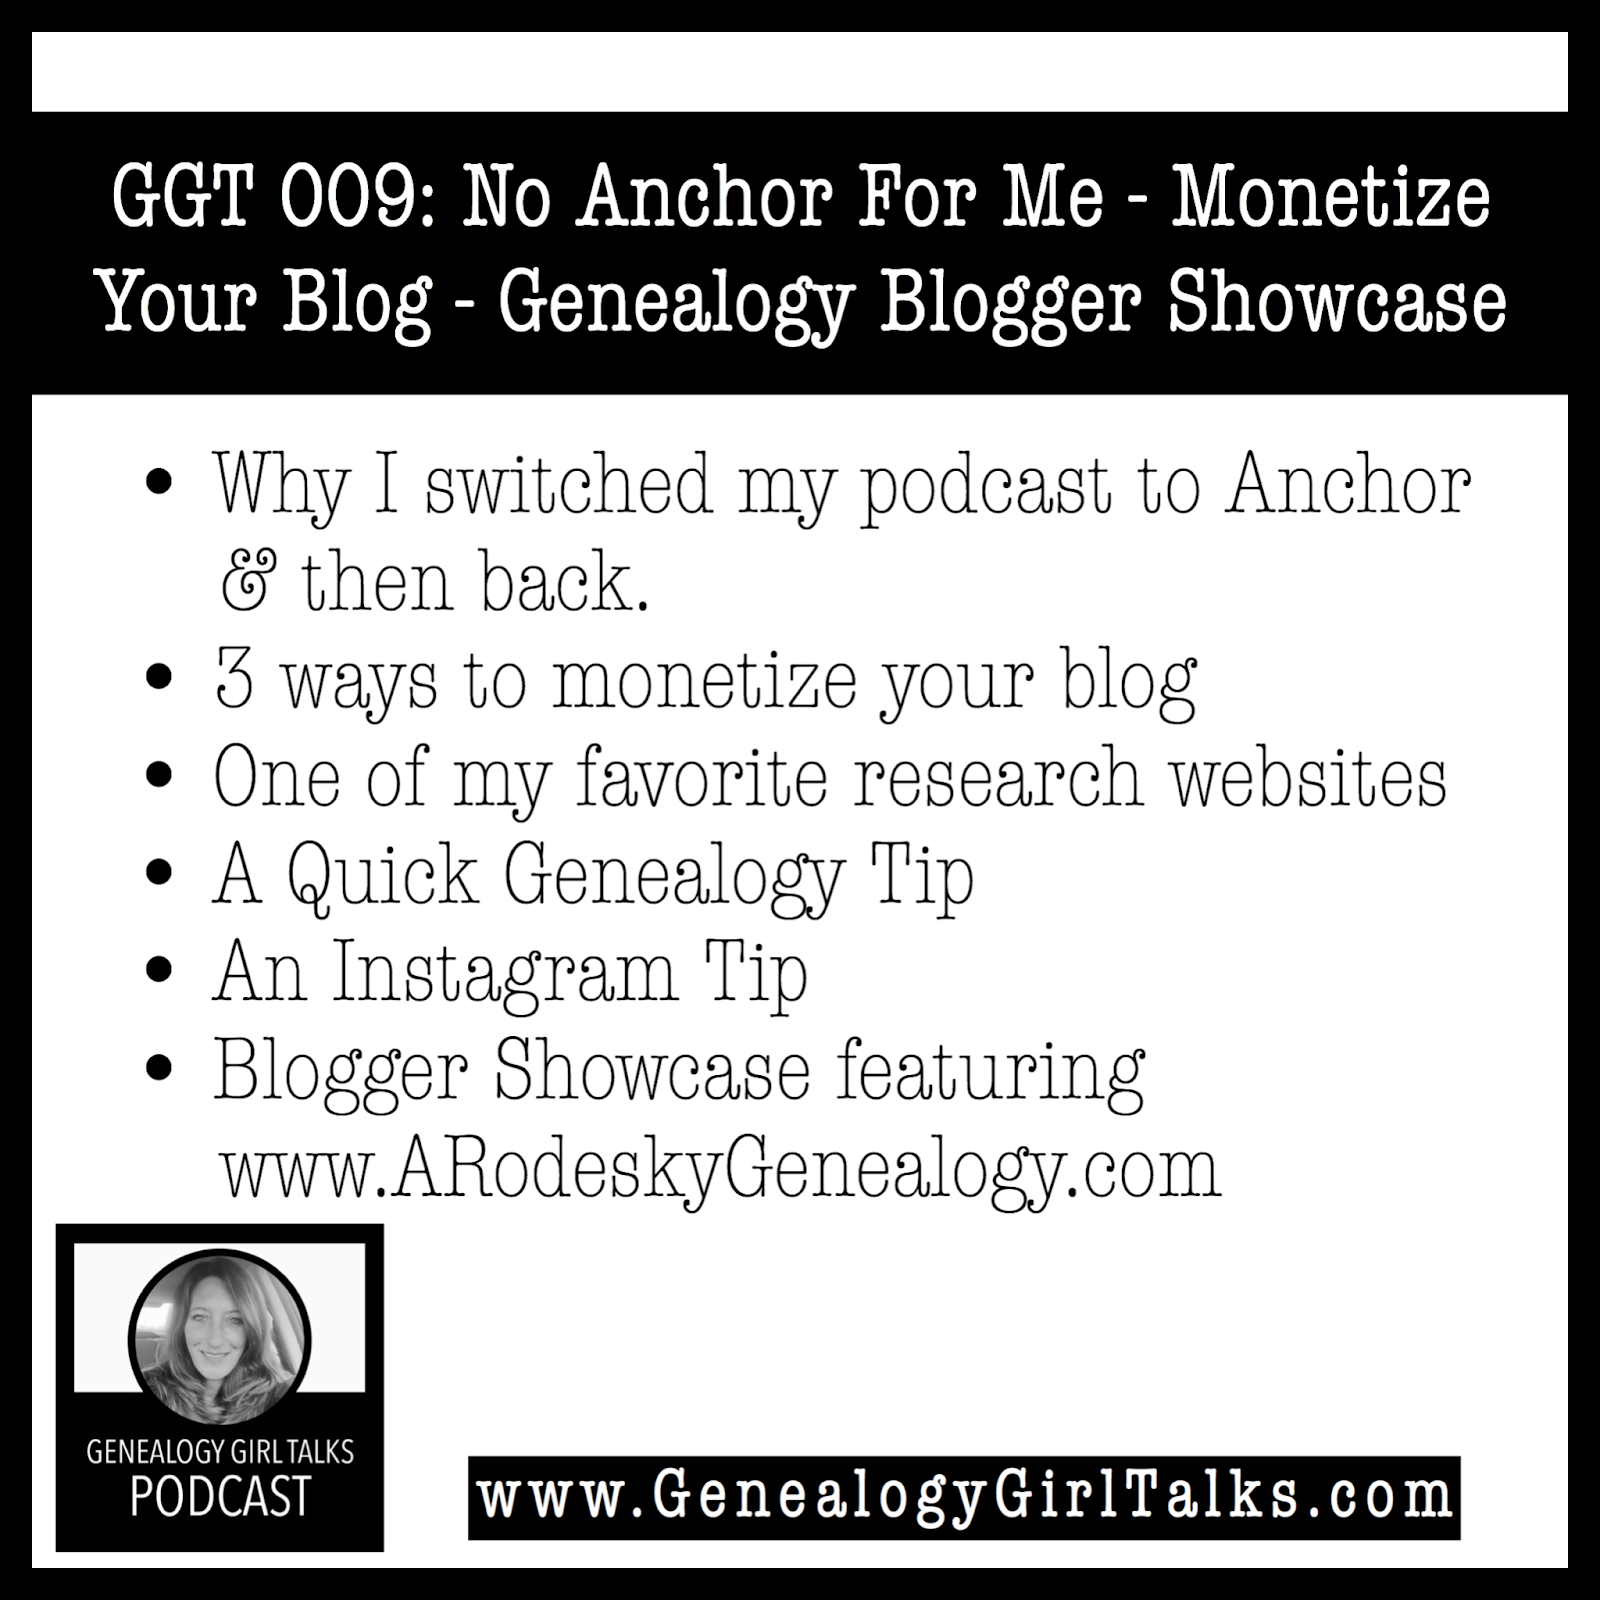 GGT 009: No Anchor For Me - Monetize Your Blog - Genealogy Blogger Showcase with GenealogyGirlTalks.com